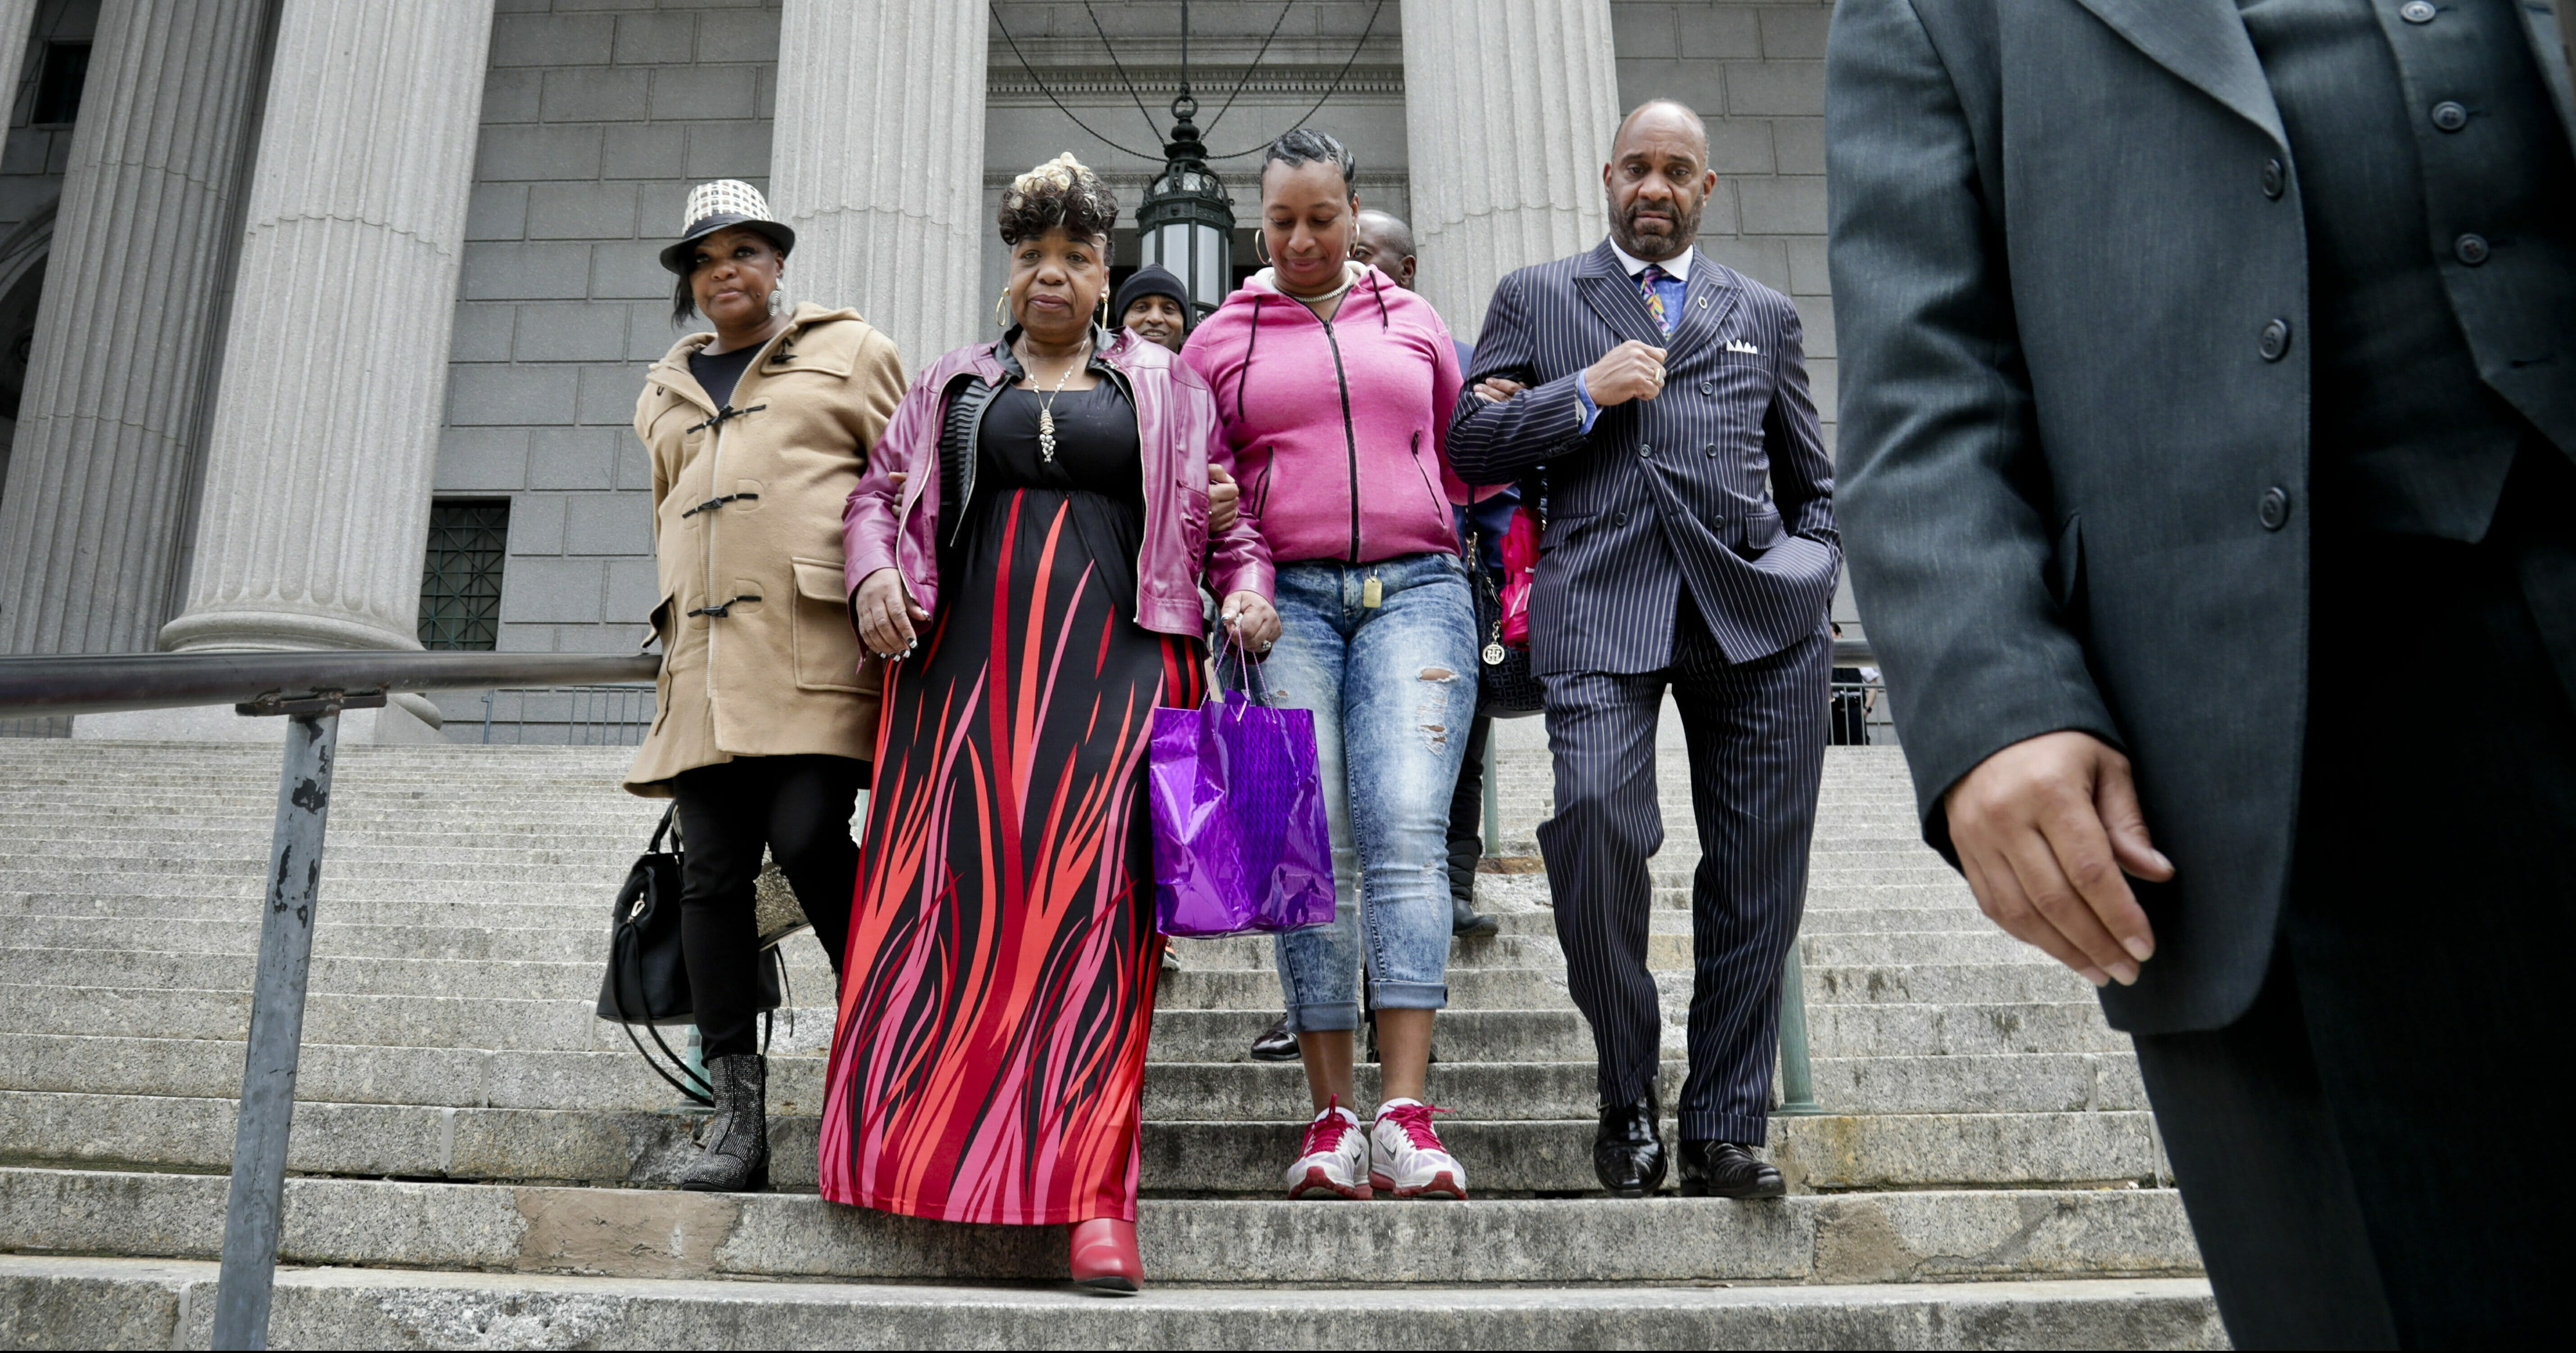 Gwen Carr, second from left, mother of Eric Garner- an unarmed black man who died as he was being subdued in a chokehold by officer Daniel Pantaleo nearly five years ago, is escorted as she leaves court with family members Thursday May 9, 2019, in New York.